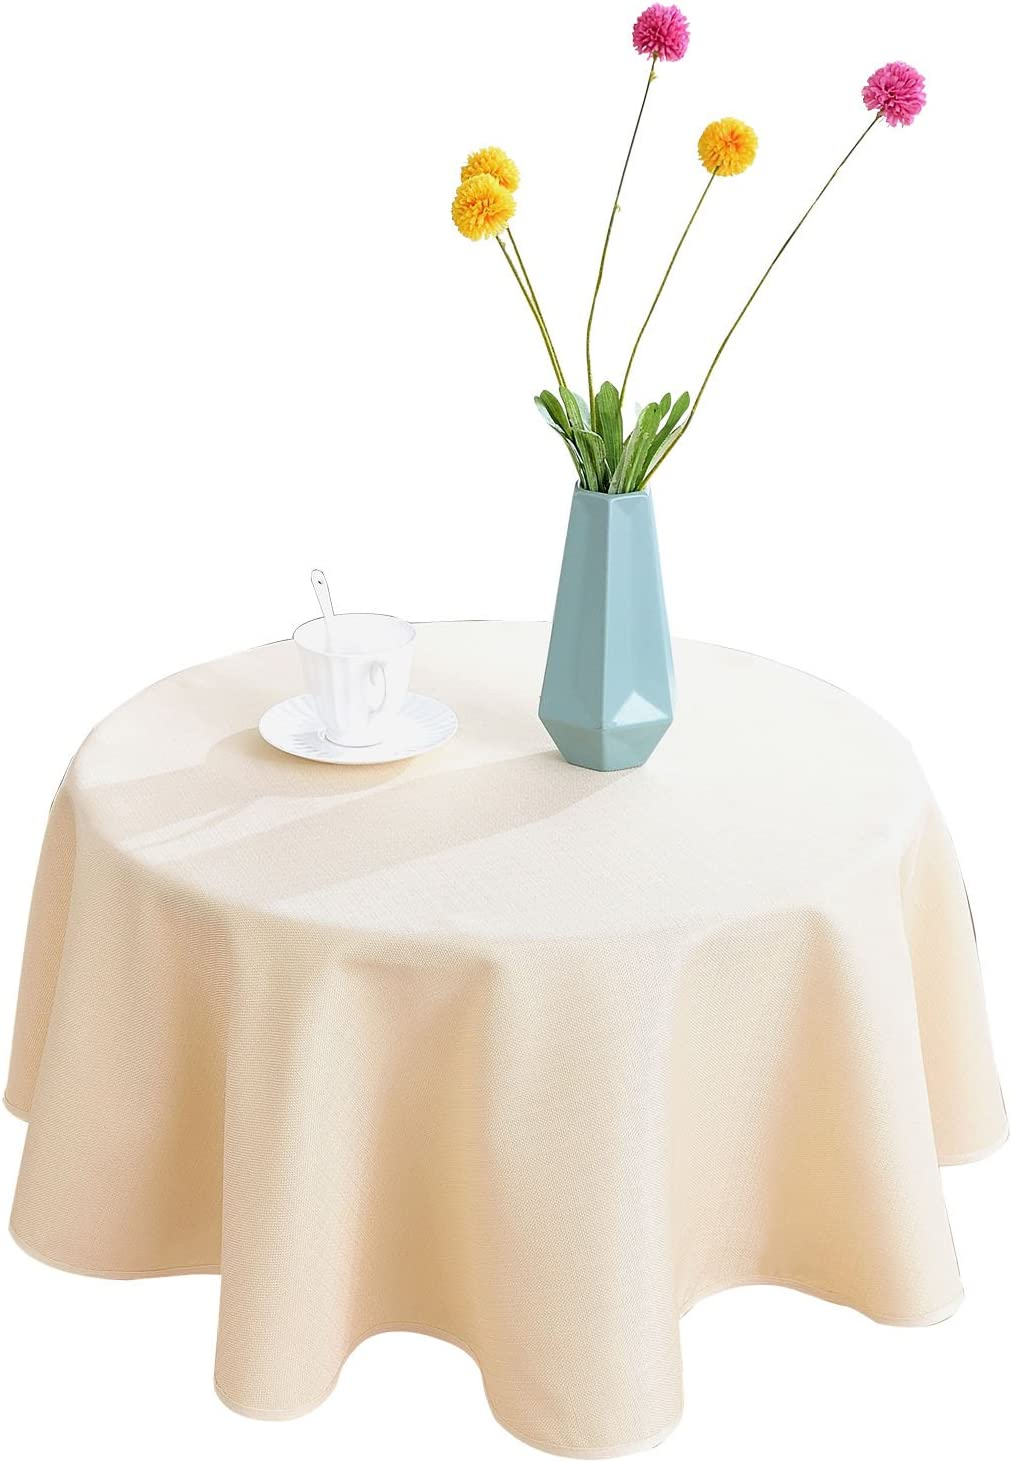 HIGHFLY Linen Round Tablecloth 47 inch Waterproof and Stain Resistant Beige Table Cloth for Home Party Coffee bar